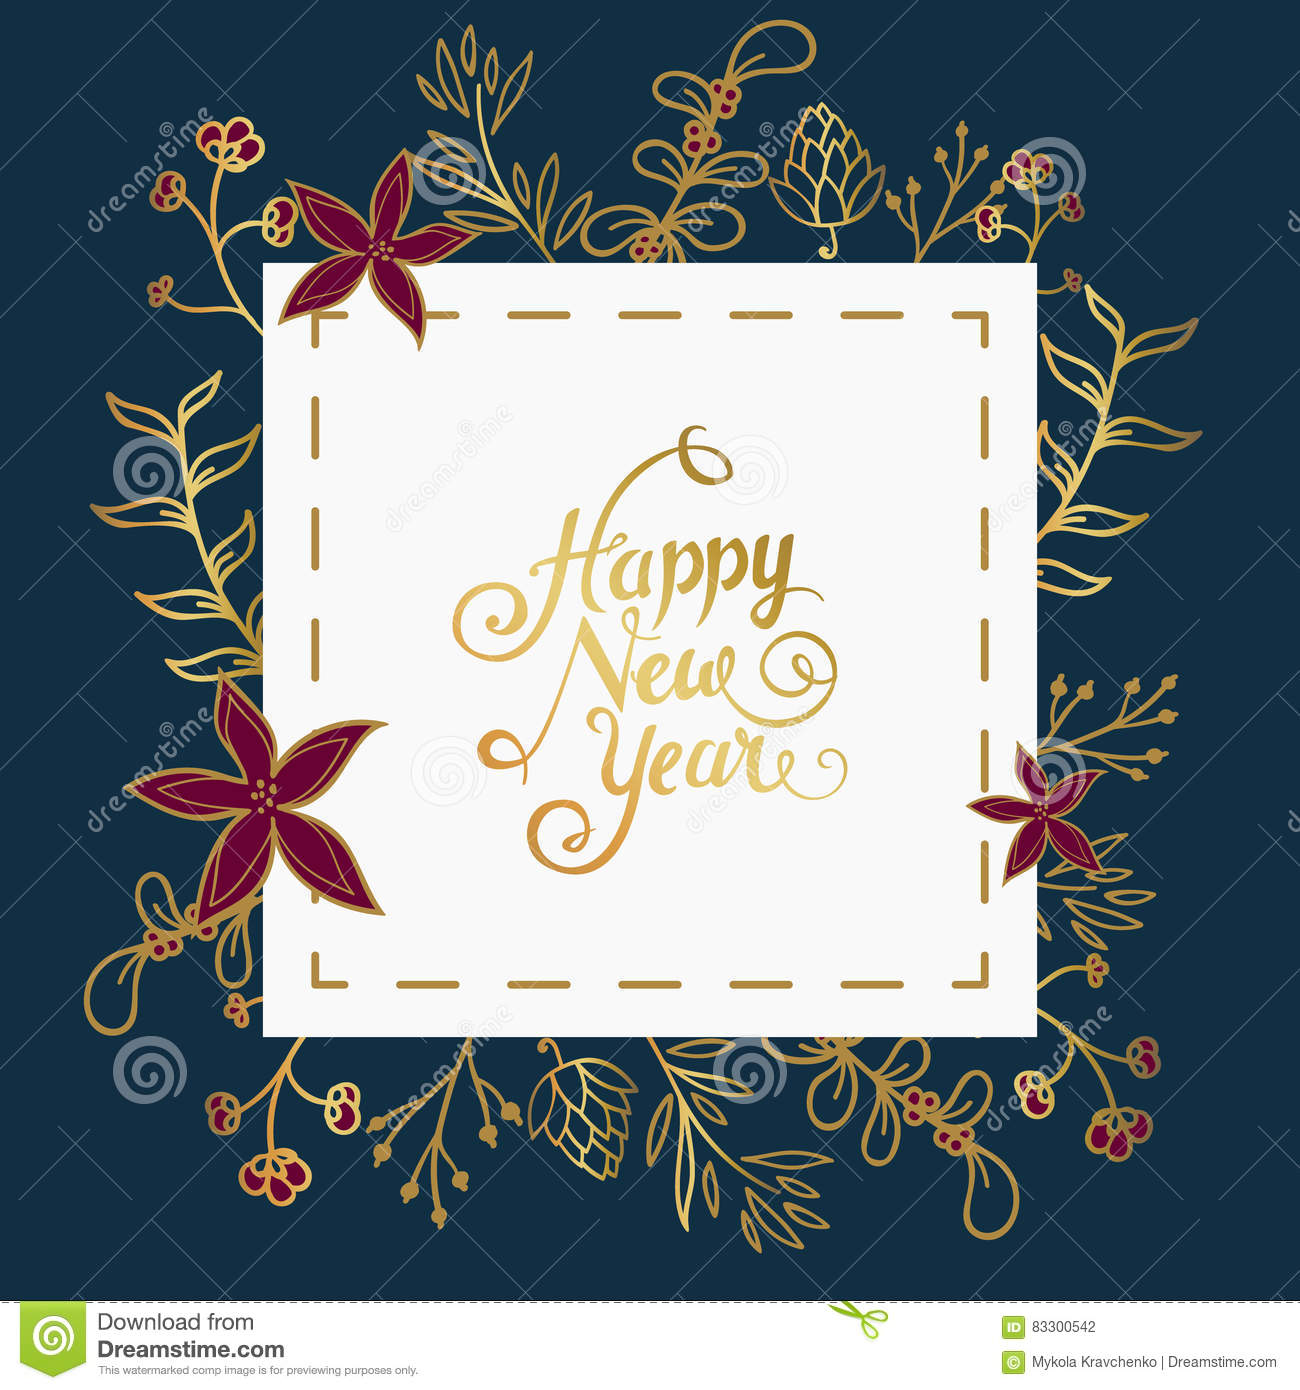 new year wishes in white square over dark blue background with christmas ornament